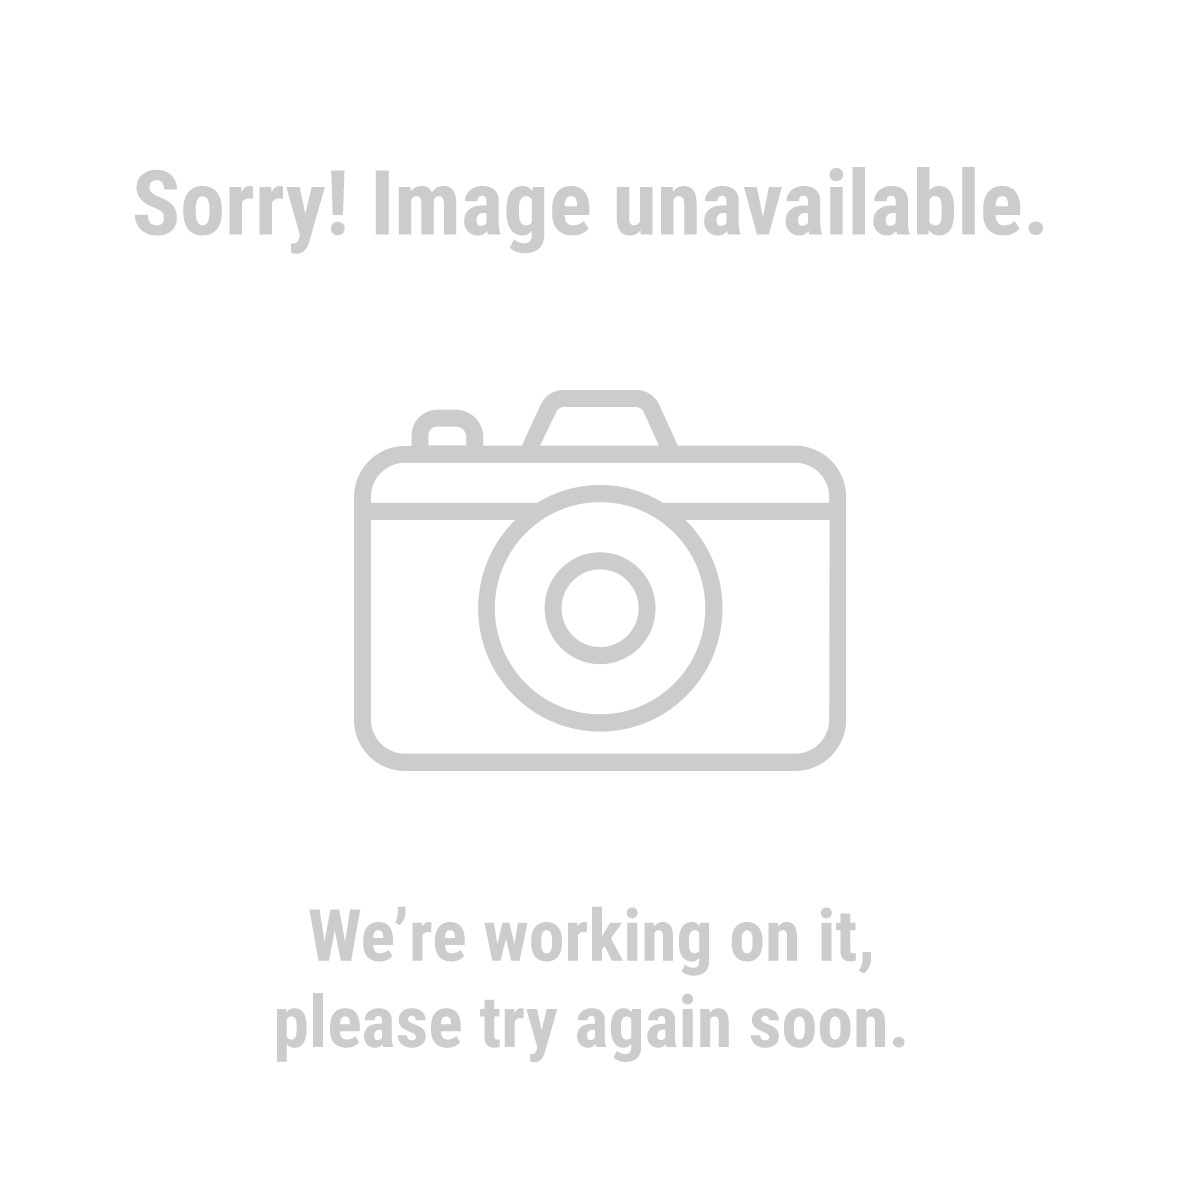 HFT® 61807 Large Tilt Mount Flat Panel TV Bracket